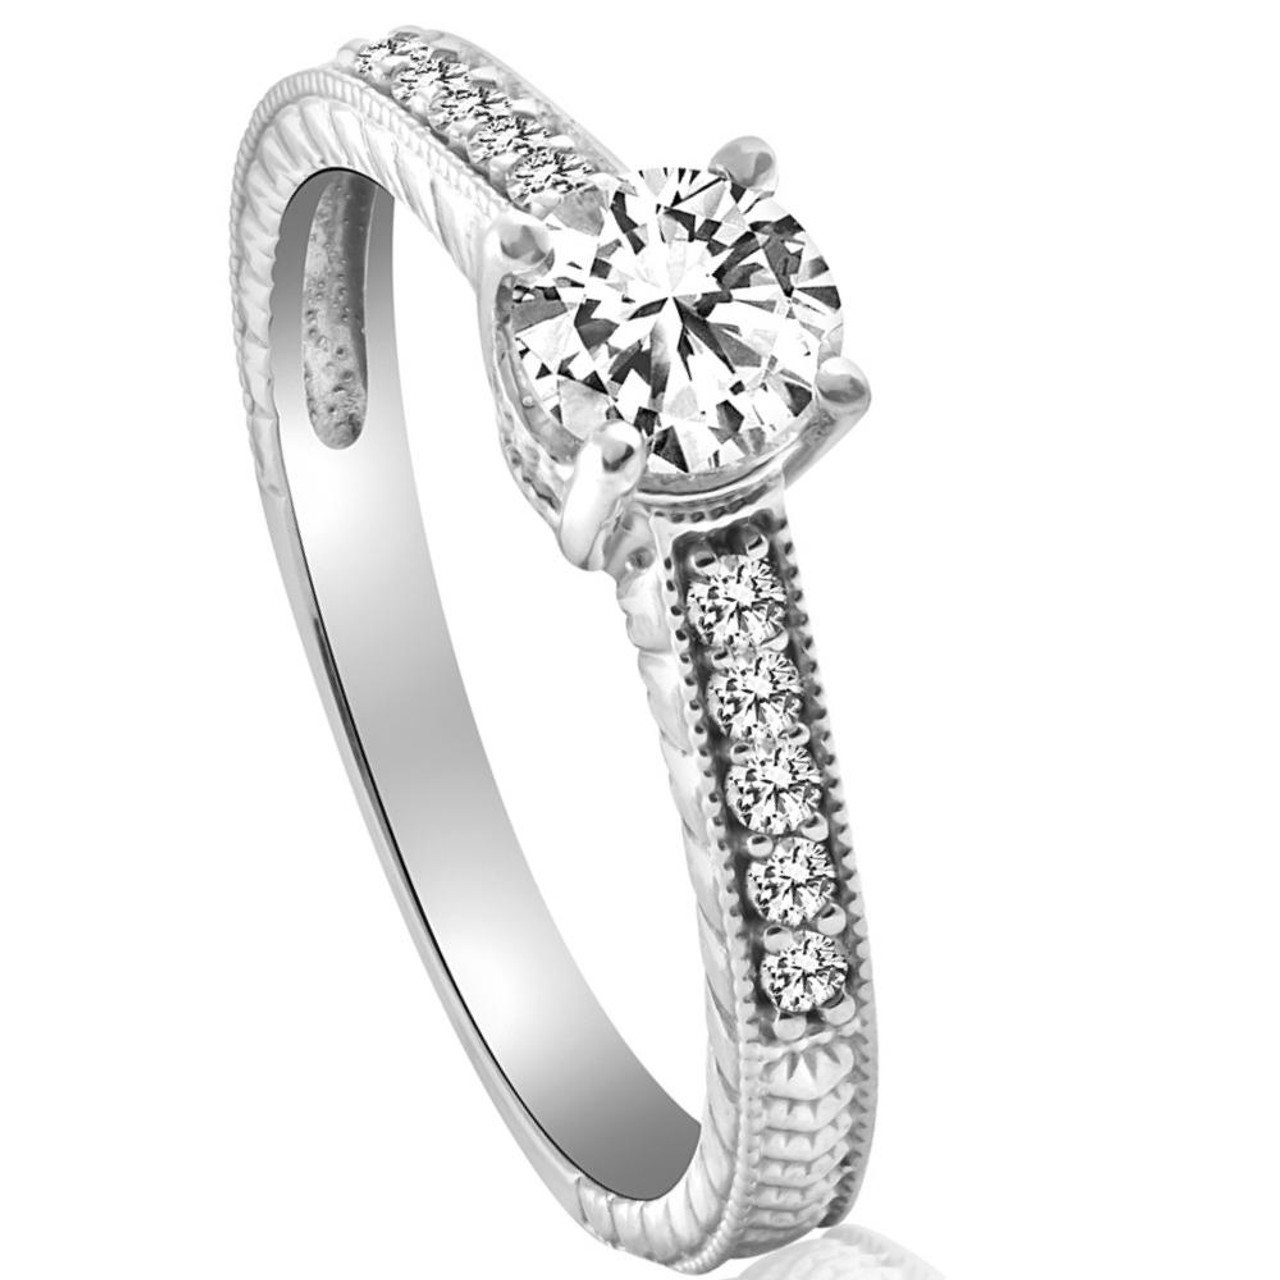 Bright 2.70 Ct Diamond Solitaire 14k White Gold Wedding Ring Size M Fine Jewellery